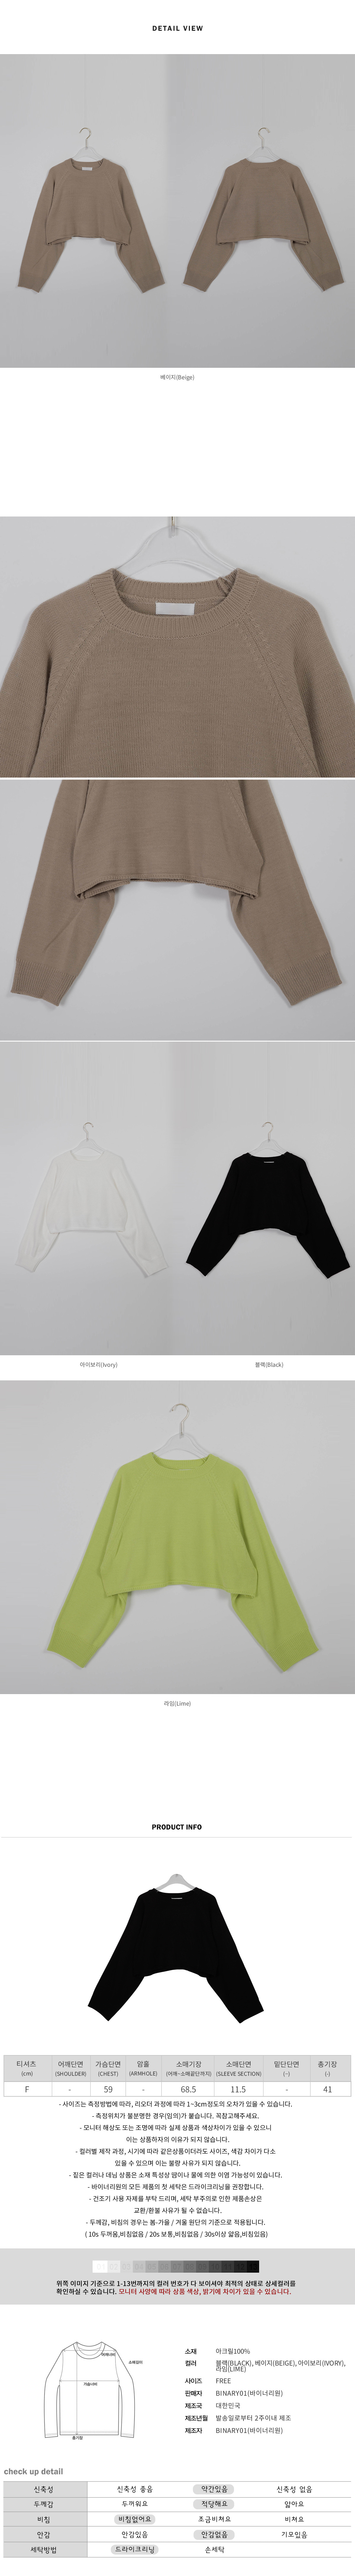 Gent crop knit